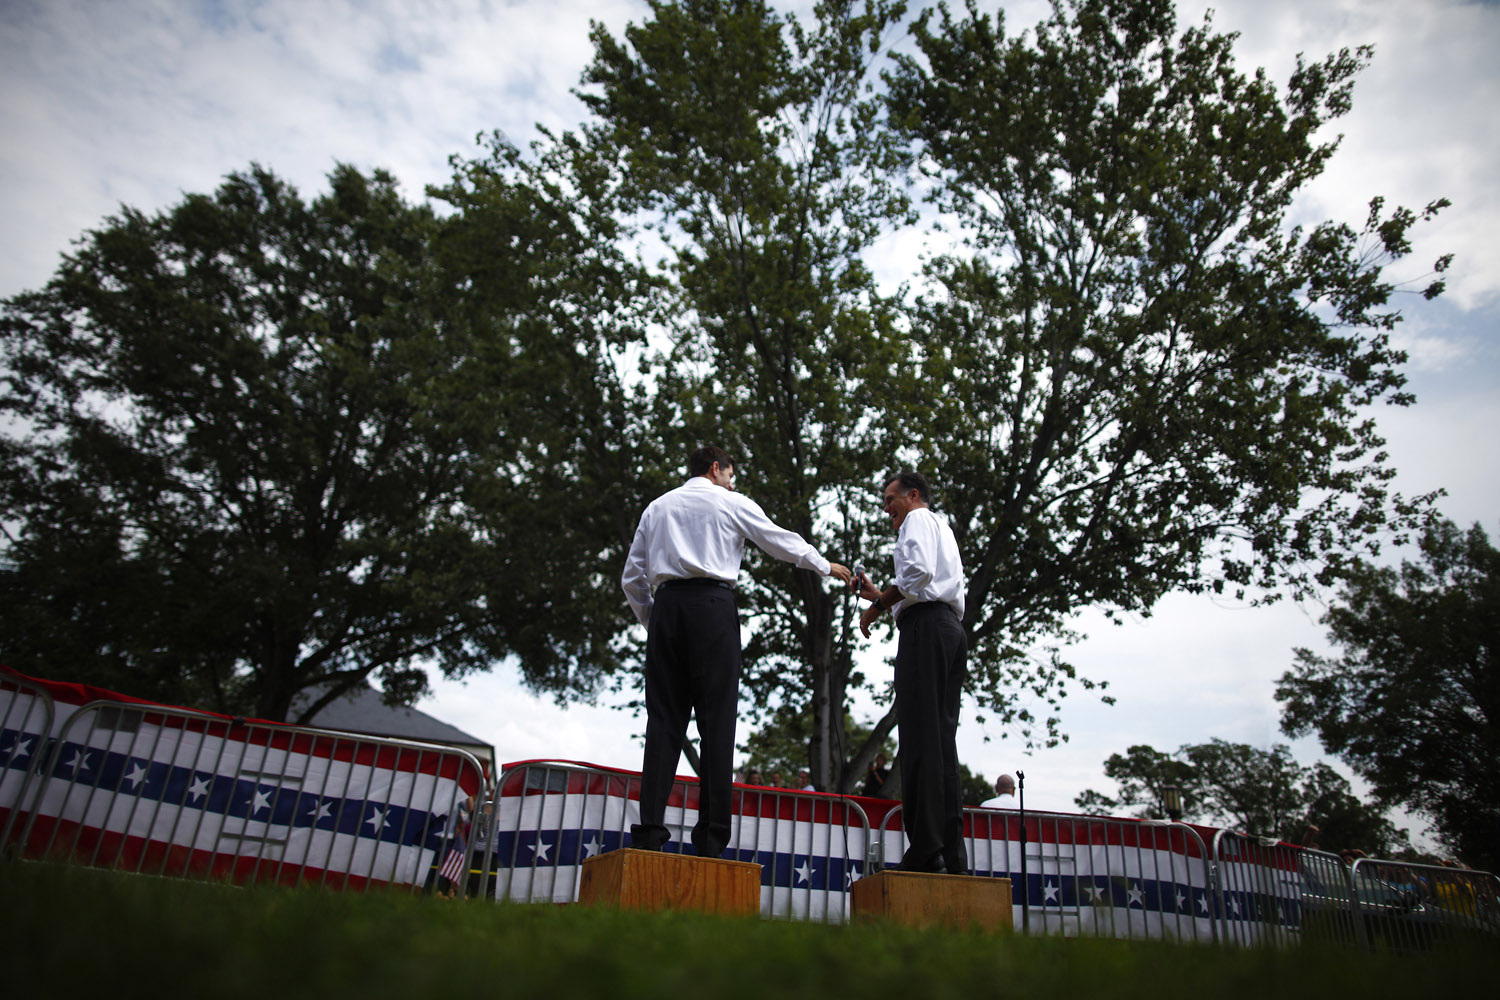 Aug. 11, 2012. Mitt Romney and Rep. Paul Ryan during a campaign event in Ashland, Va.